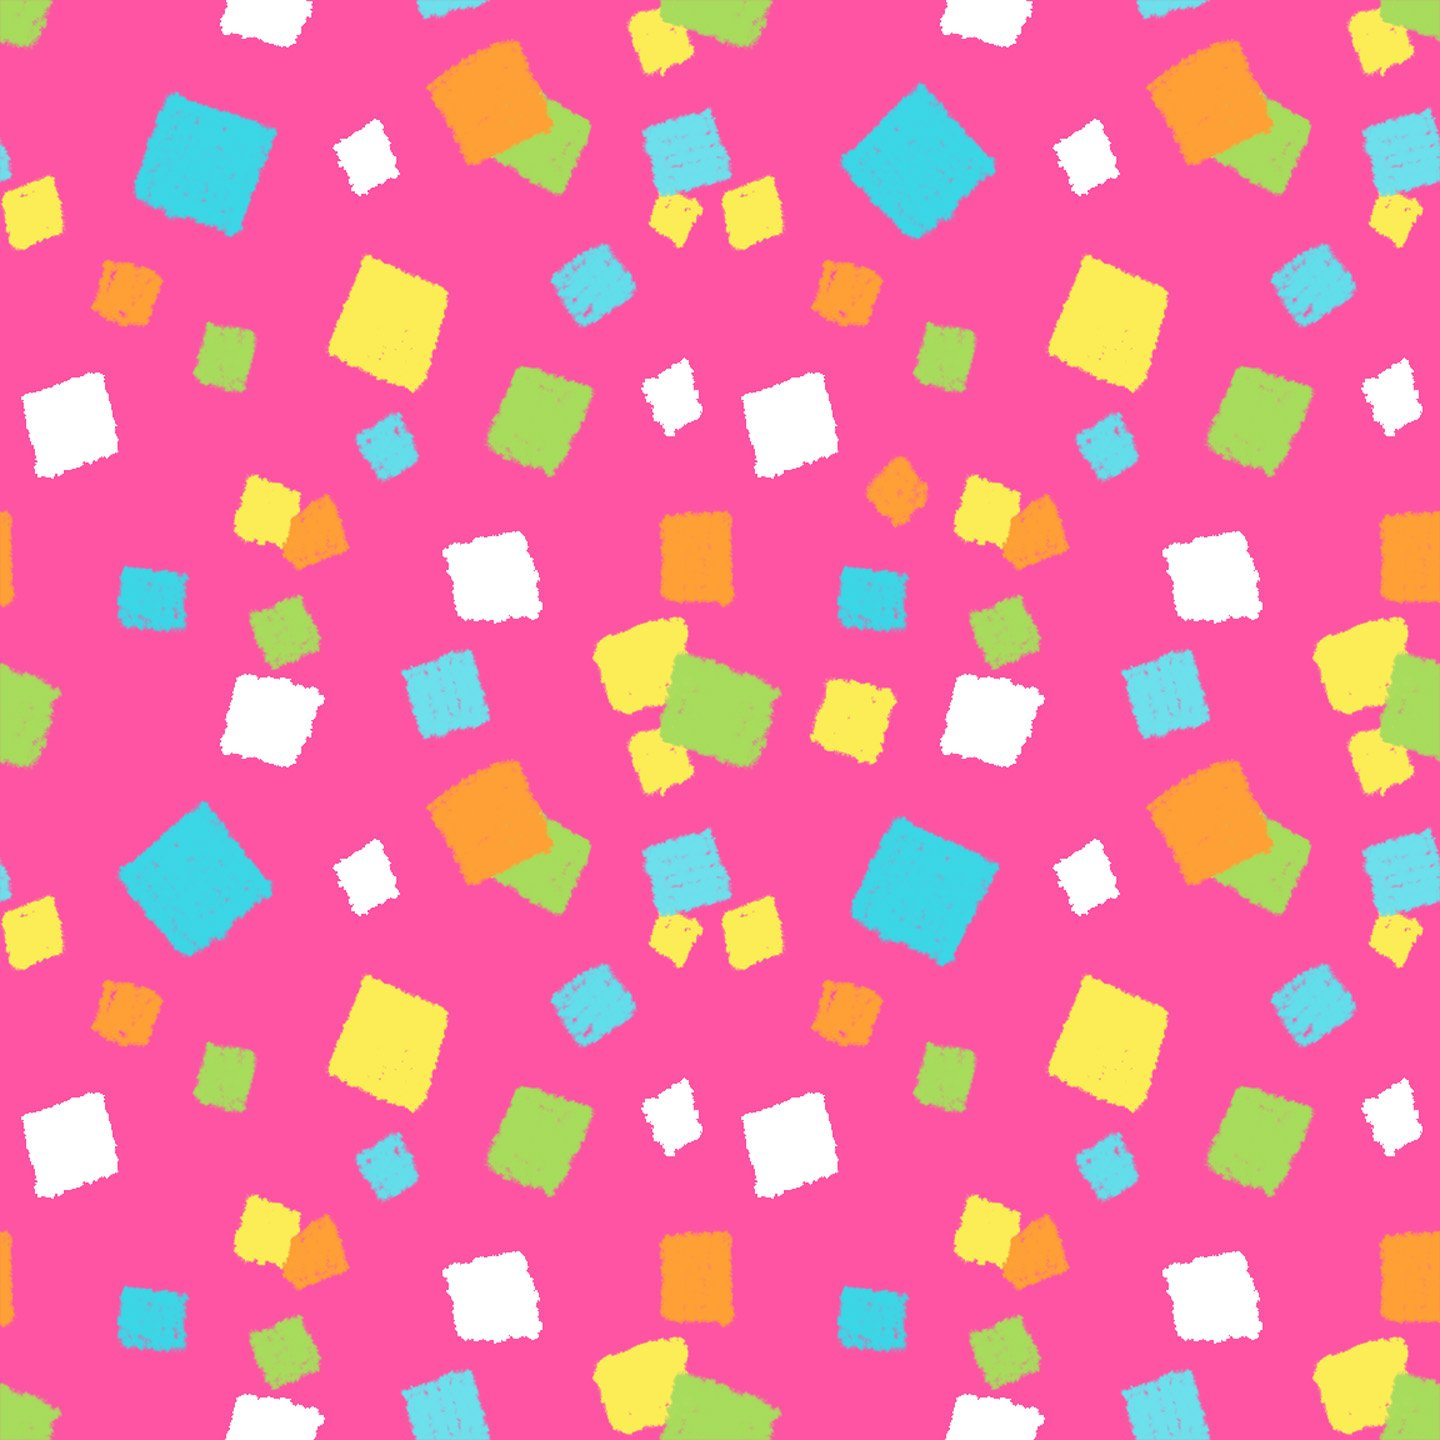 Remnant - 1 yd - Henry Glass - Hop To It - Pink Confetti - 6856-22